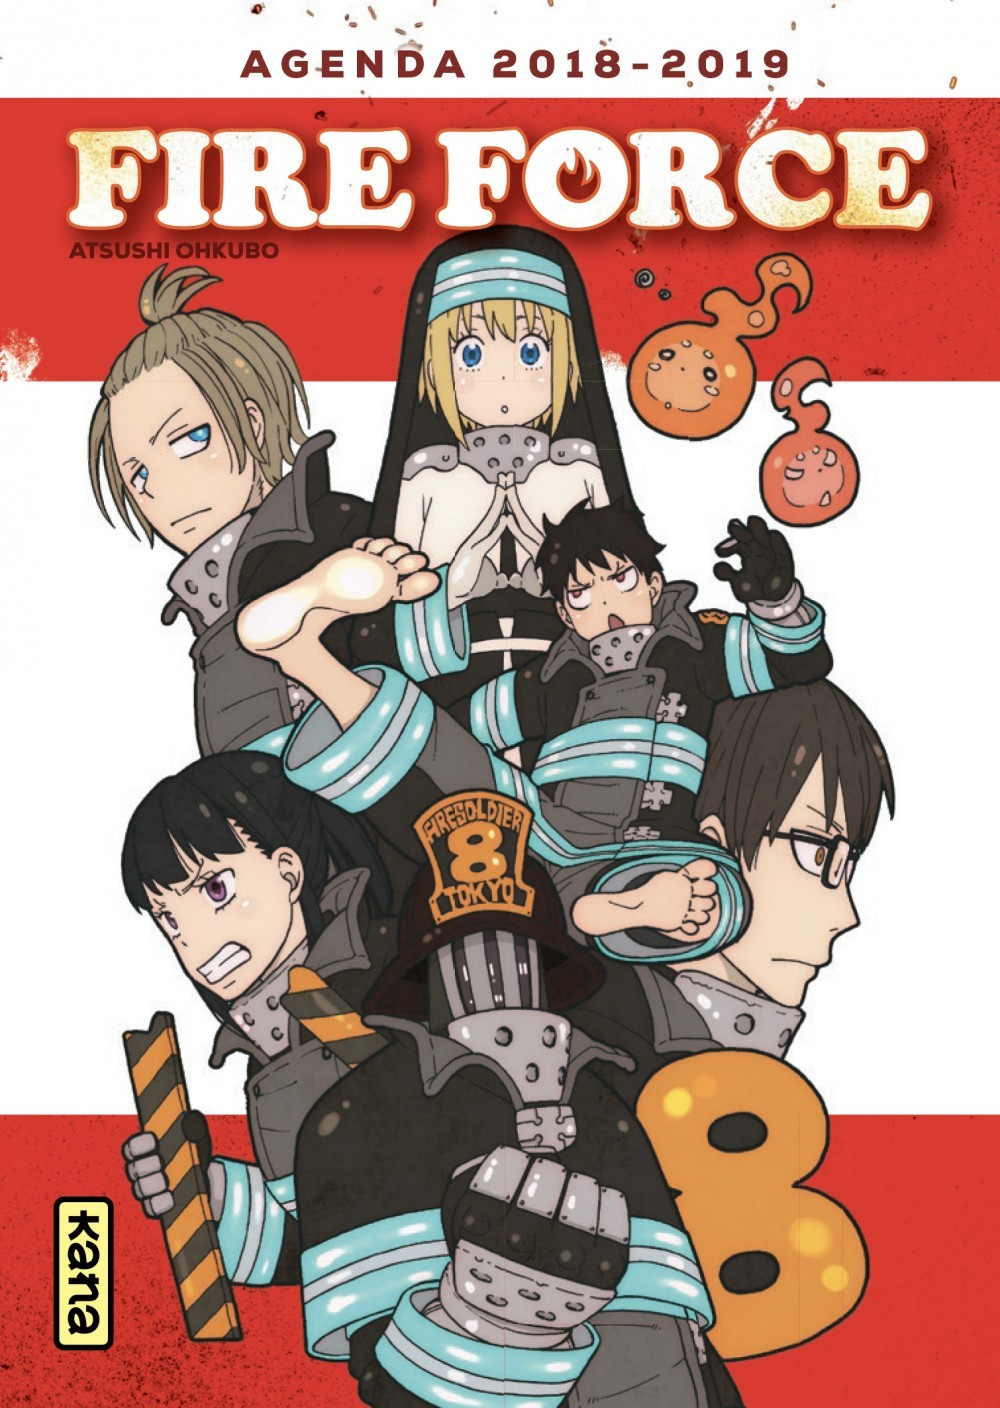 AGENDA FIRE FORCE, TOME 1